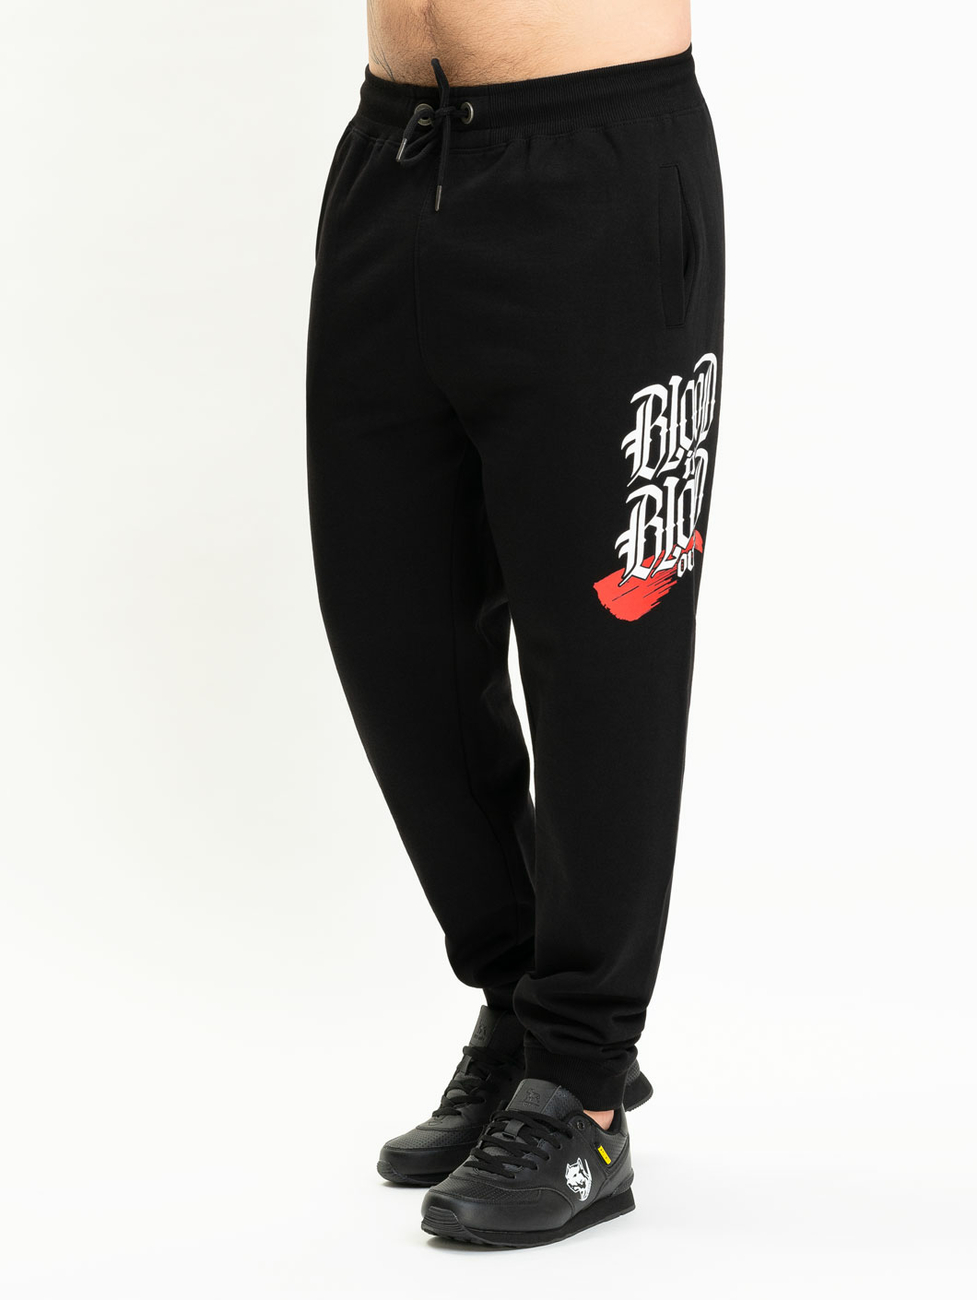 Blood In Blood Out Tranjeros Sweatpants XL